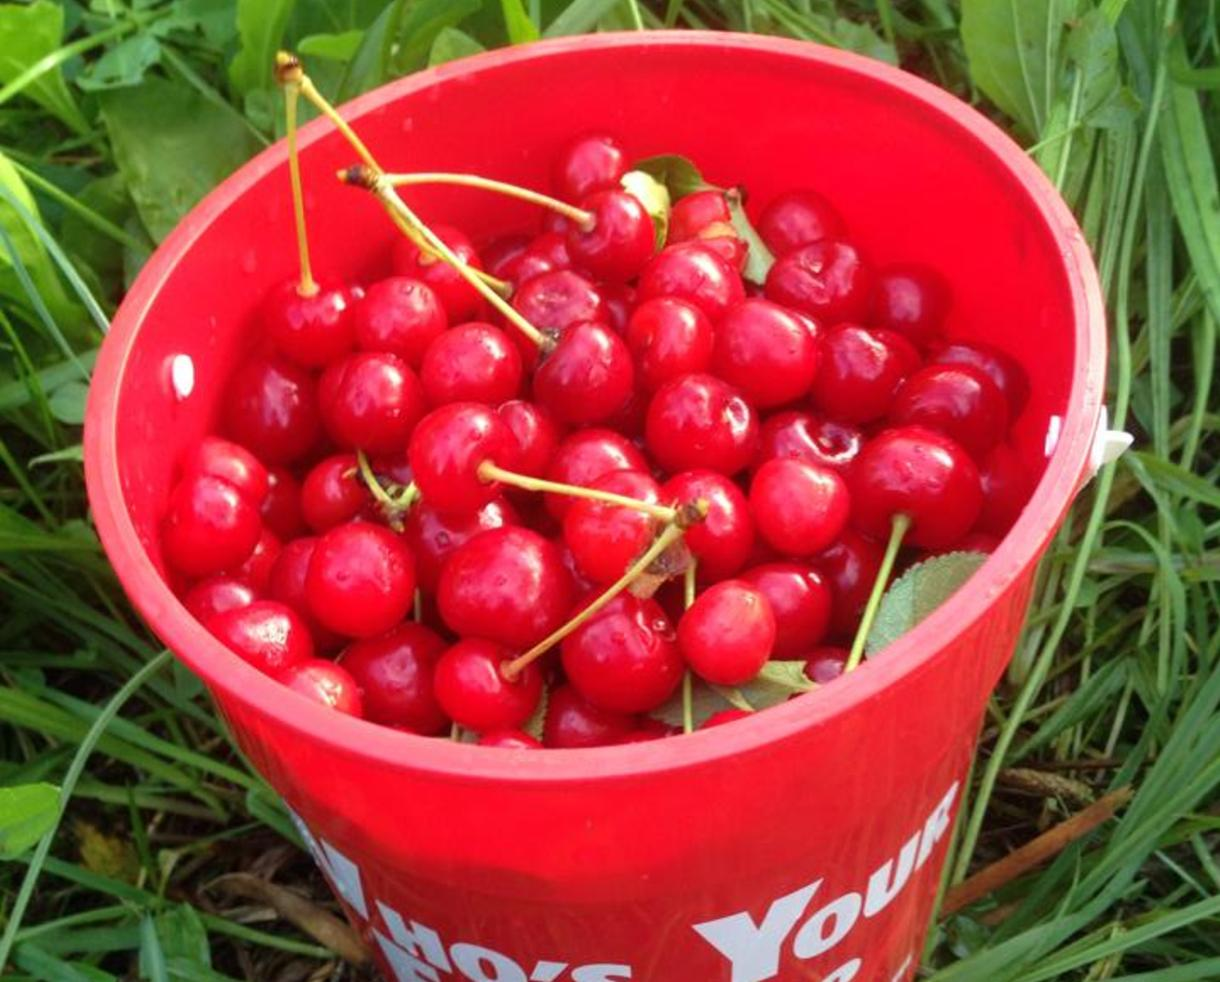 $6 for Great Country Farms Admission - U-Pick Cherries & Blueberries in June !!